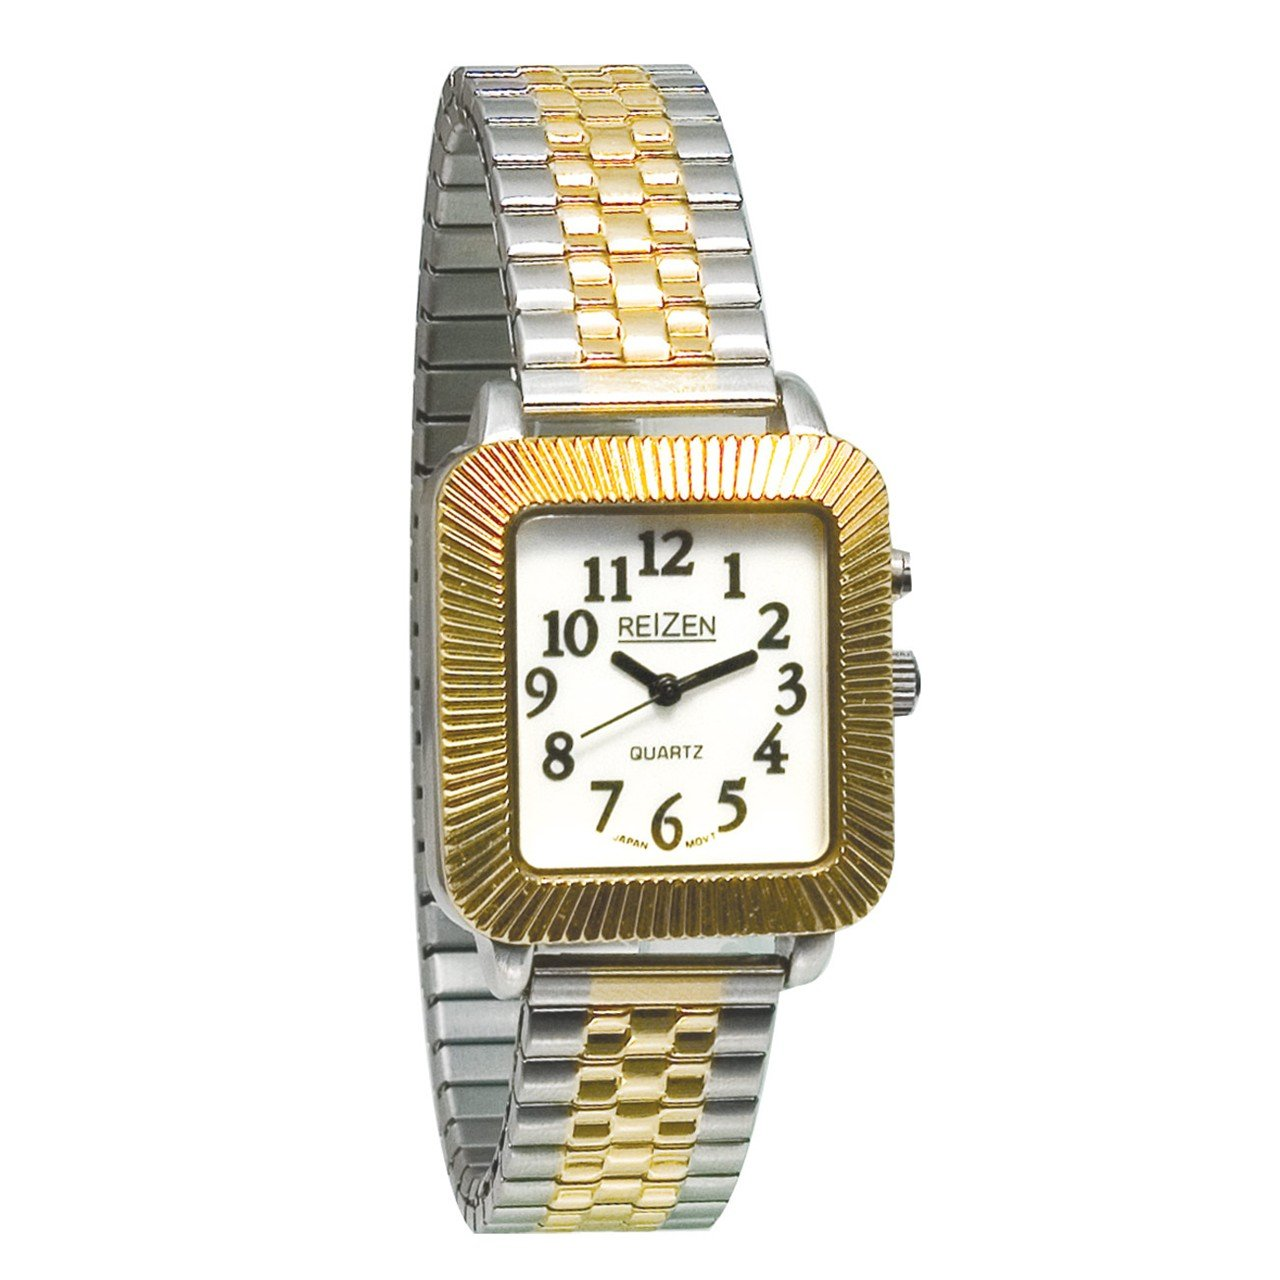 Reizen Unisex Glow-in-the-Dark Watch - Square Face with Expansion Band by Reizen